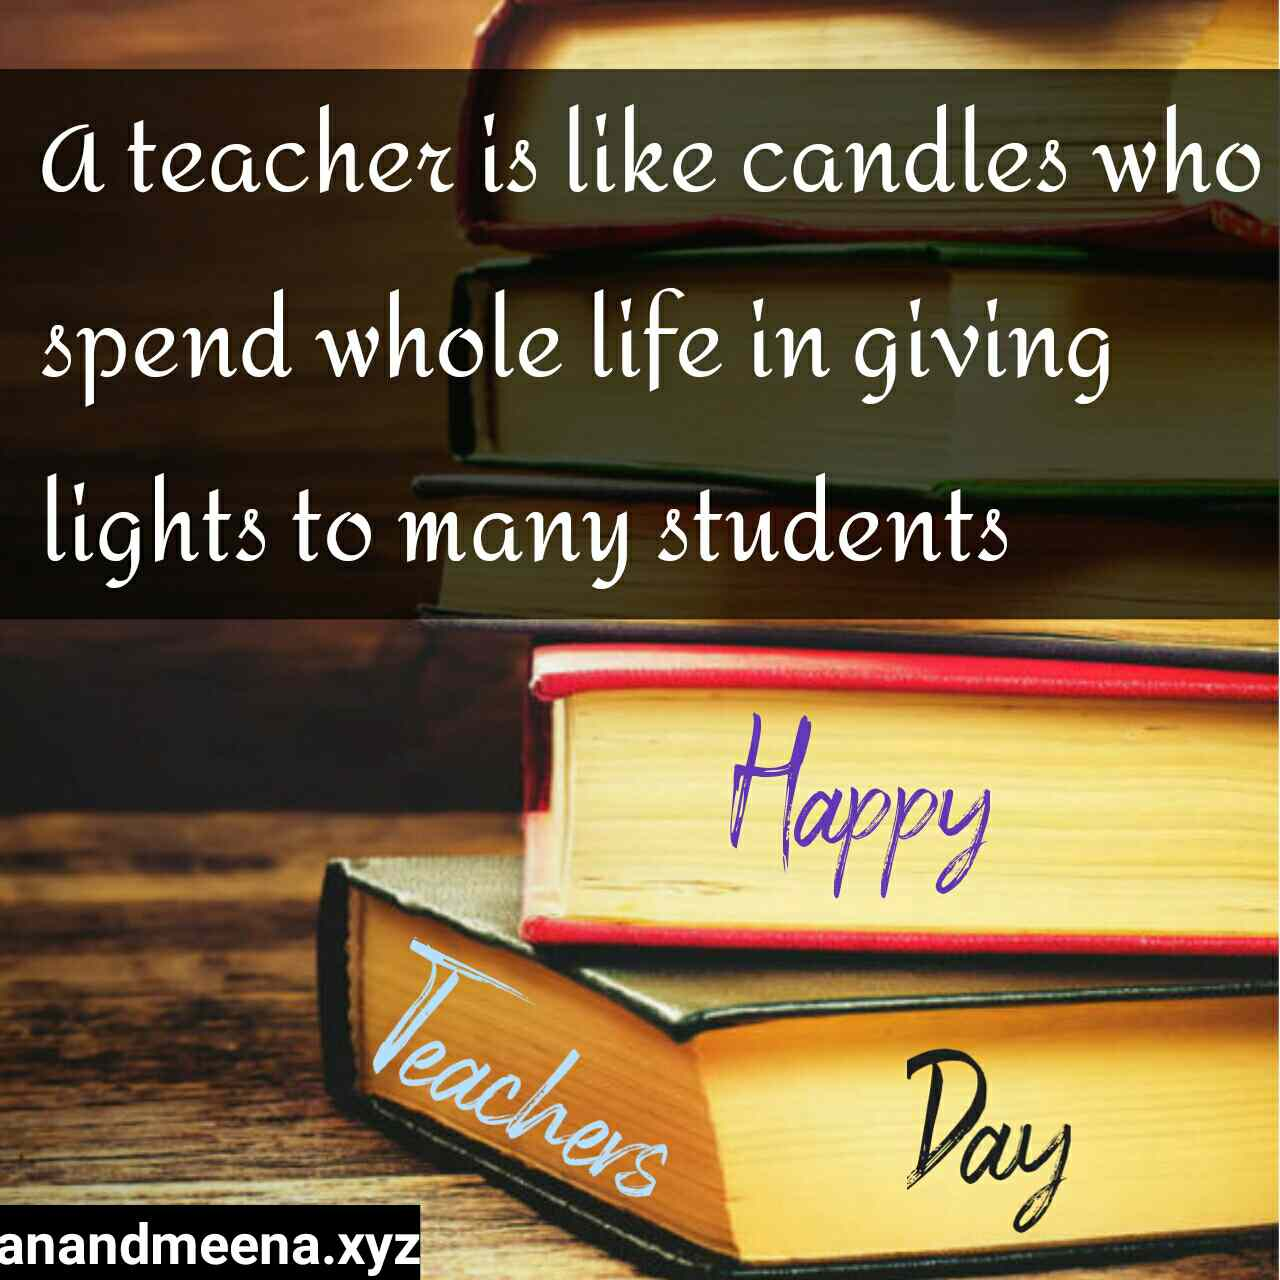 Happy Teachers Day Quotes, Happy Teachers Day Wishes